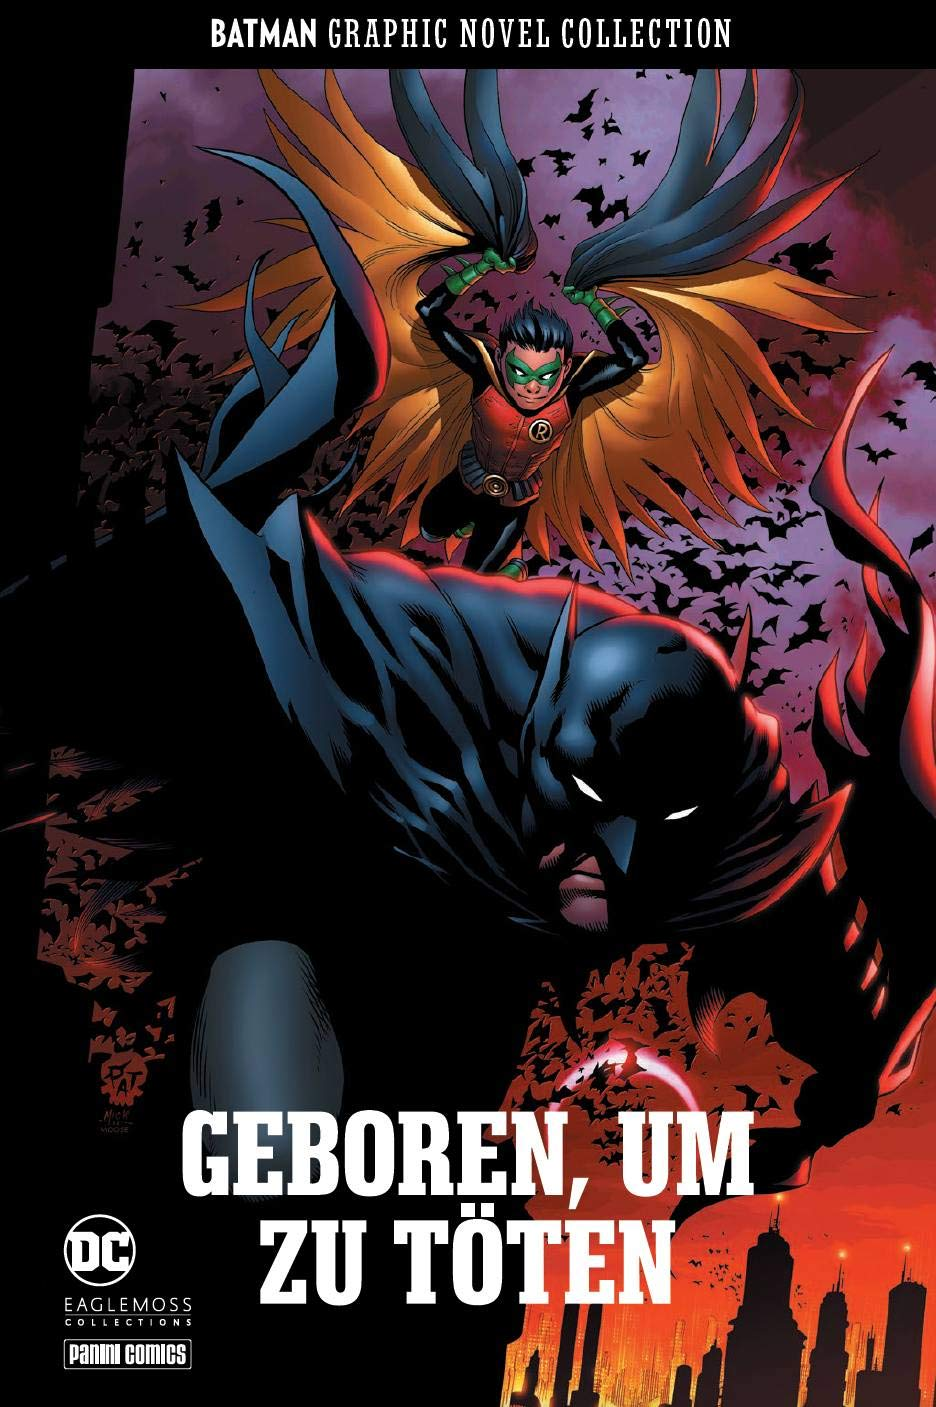 Batman Graphic Novel Collection Geboren, um zu töten